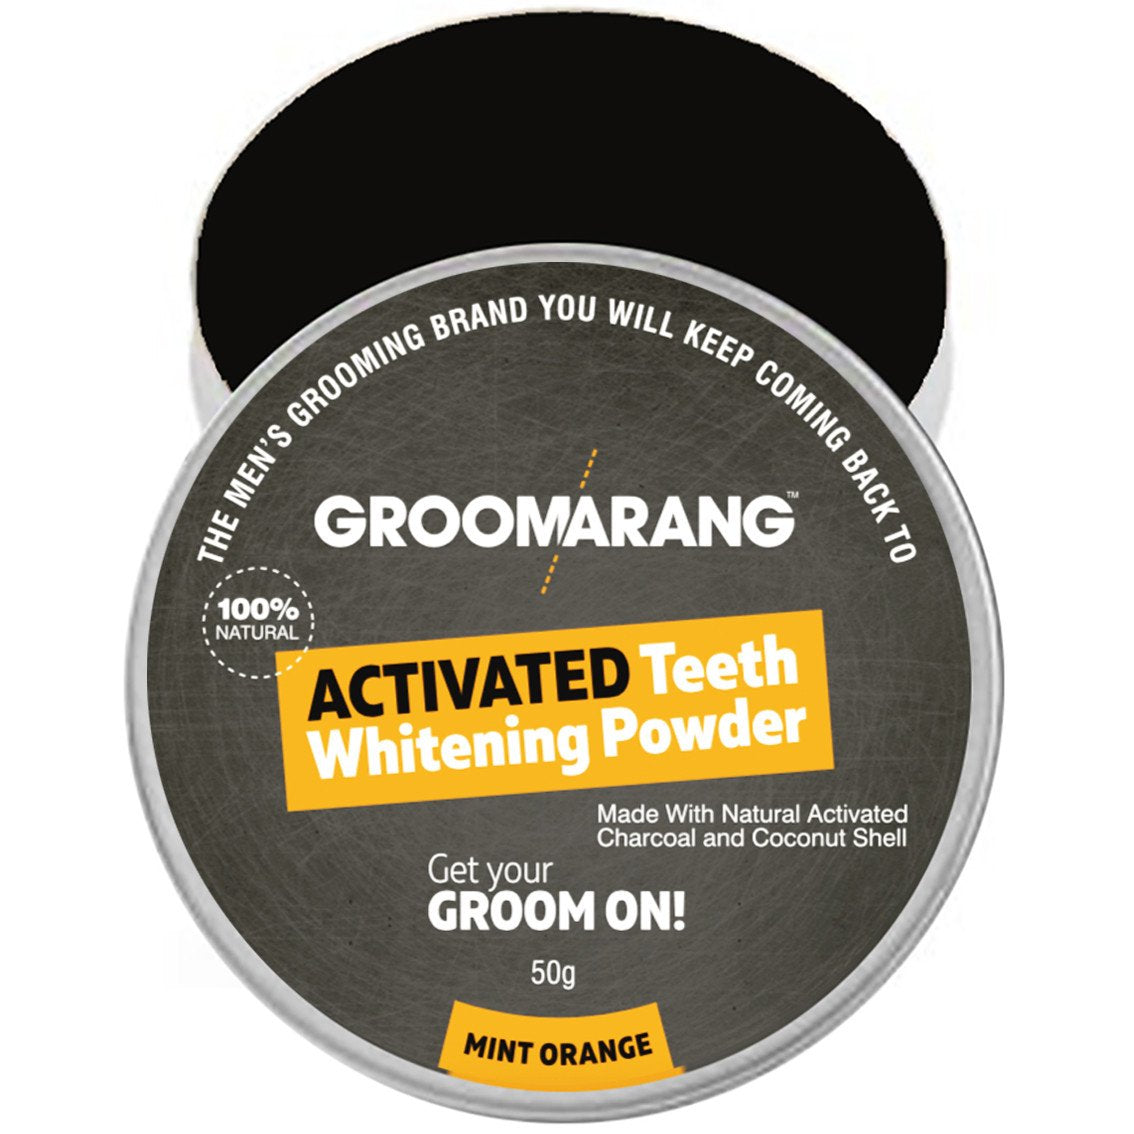 Groomarang Activated Charcoal & Coconut Shell Powder, Shaving & Grooming - Image 0